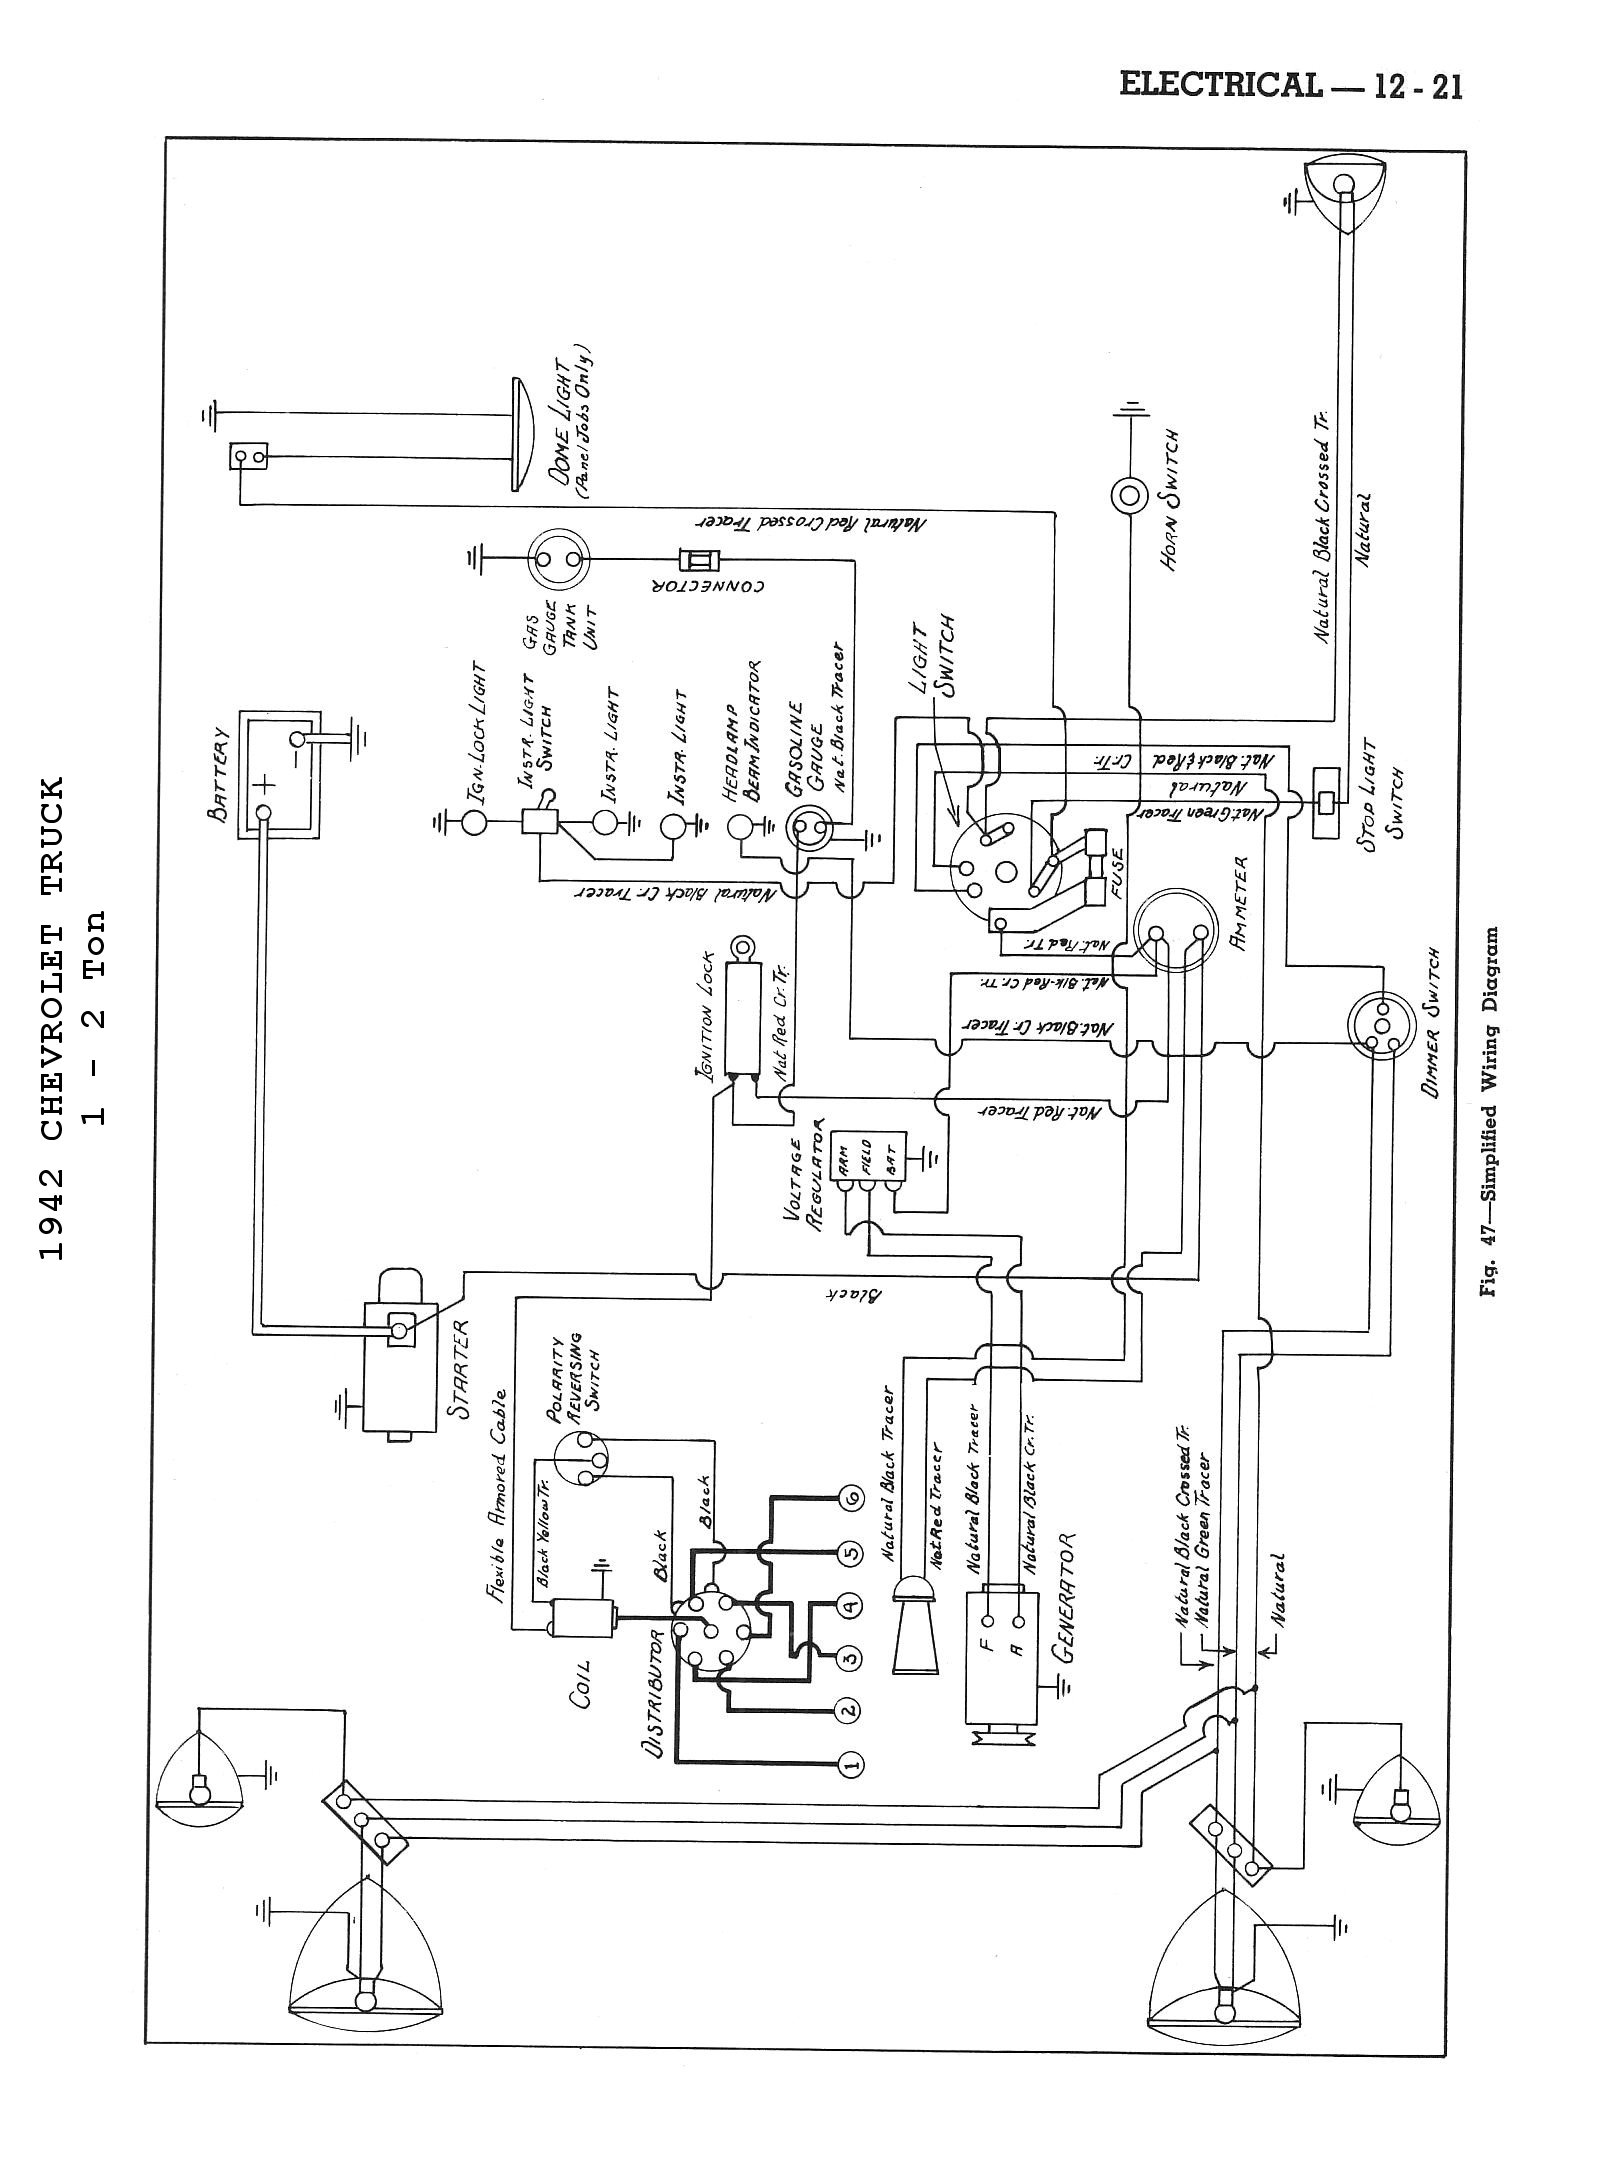 ford truck wiring diagram chevy wiring diagrams 1942 body wiring diagram atilde130acircmiddot 1942 4x2 truck wiring